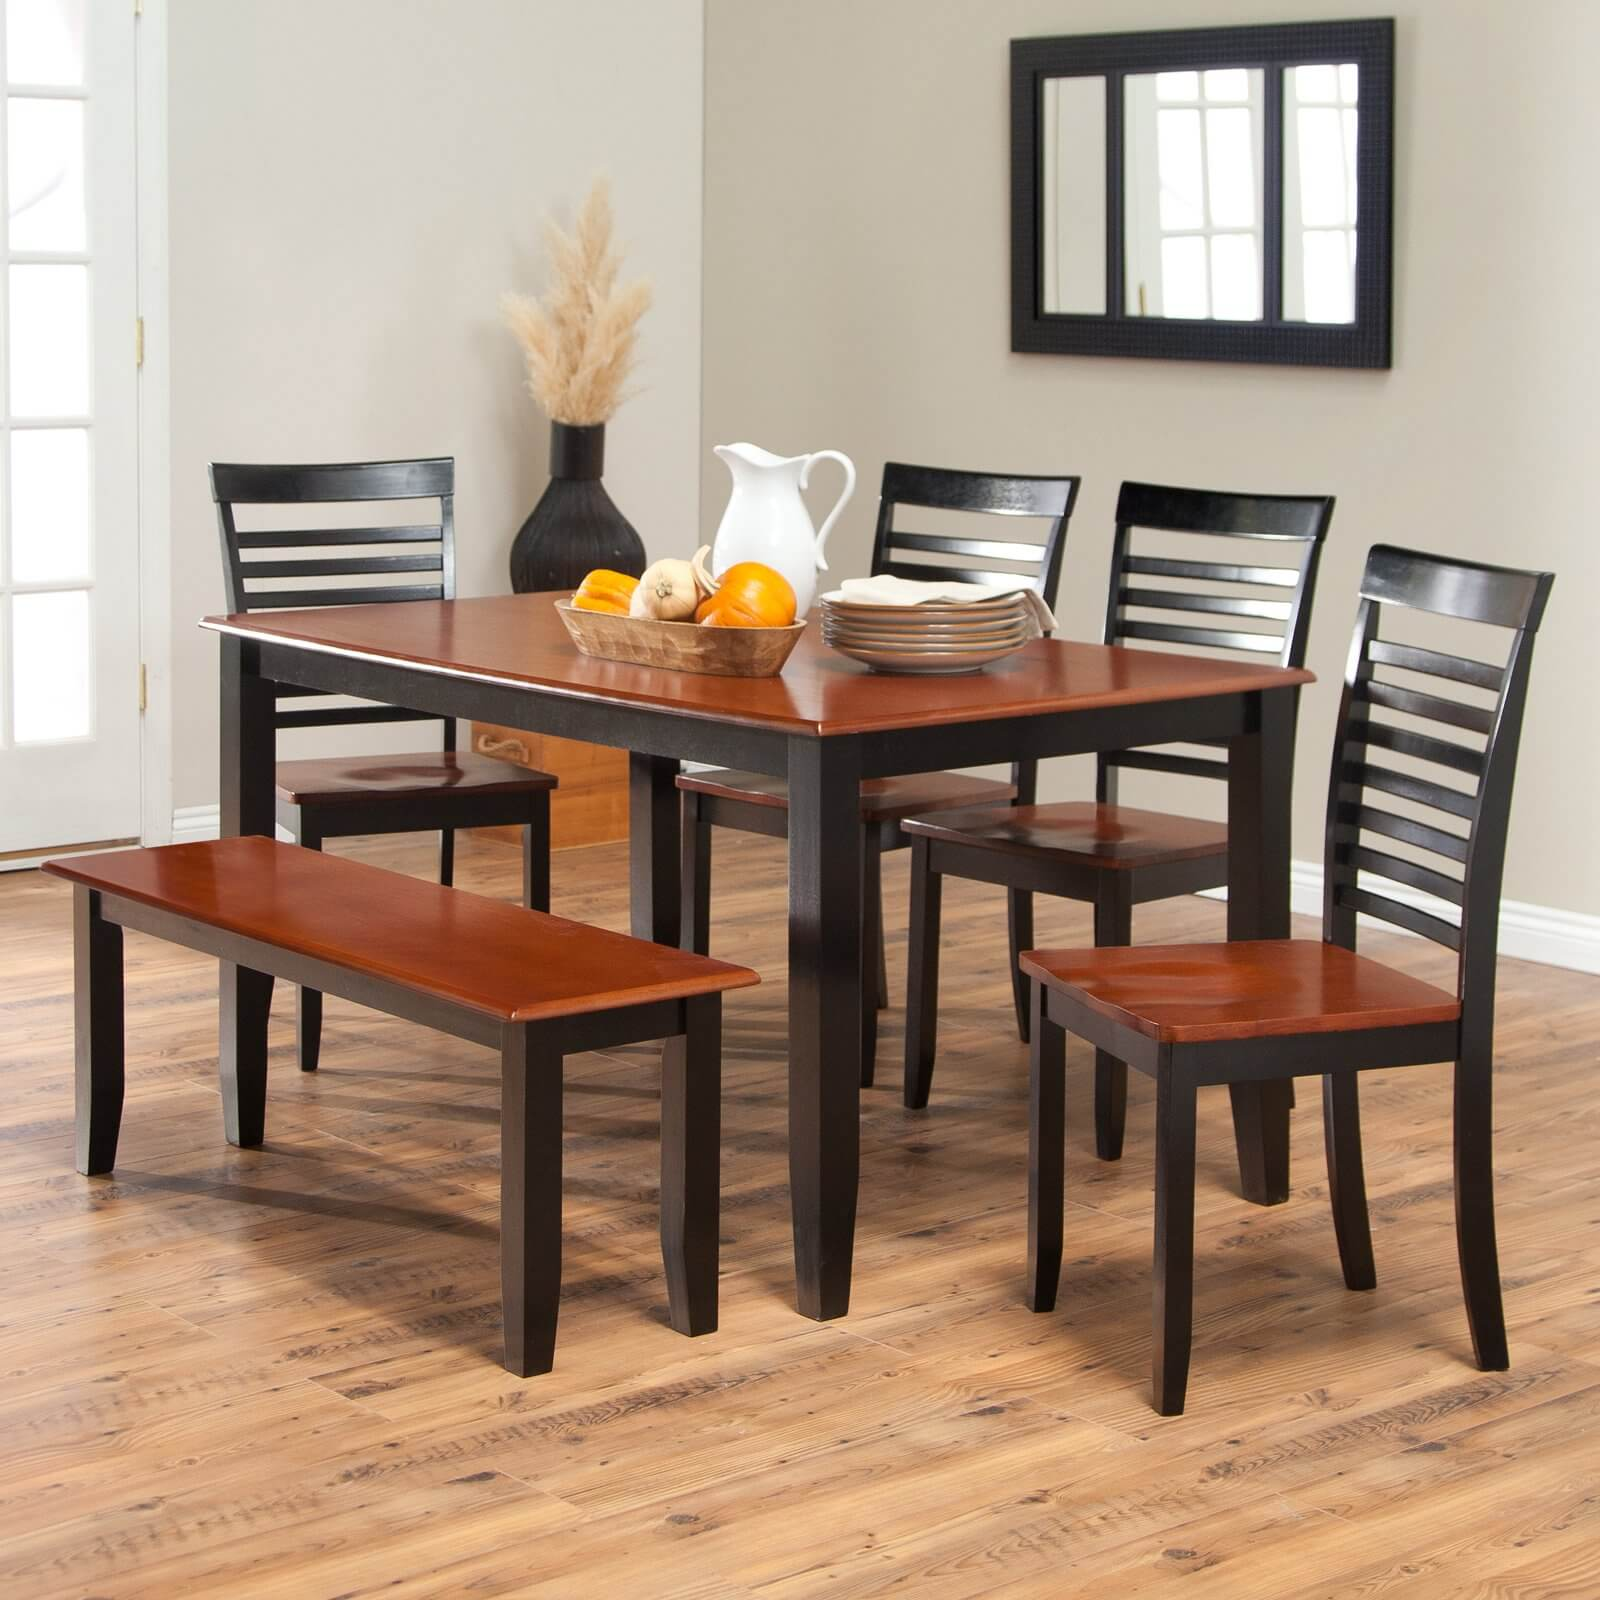 Simple two toned dining set with bench The seats and table top are